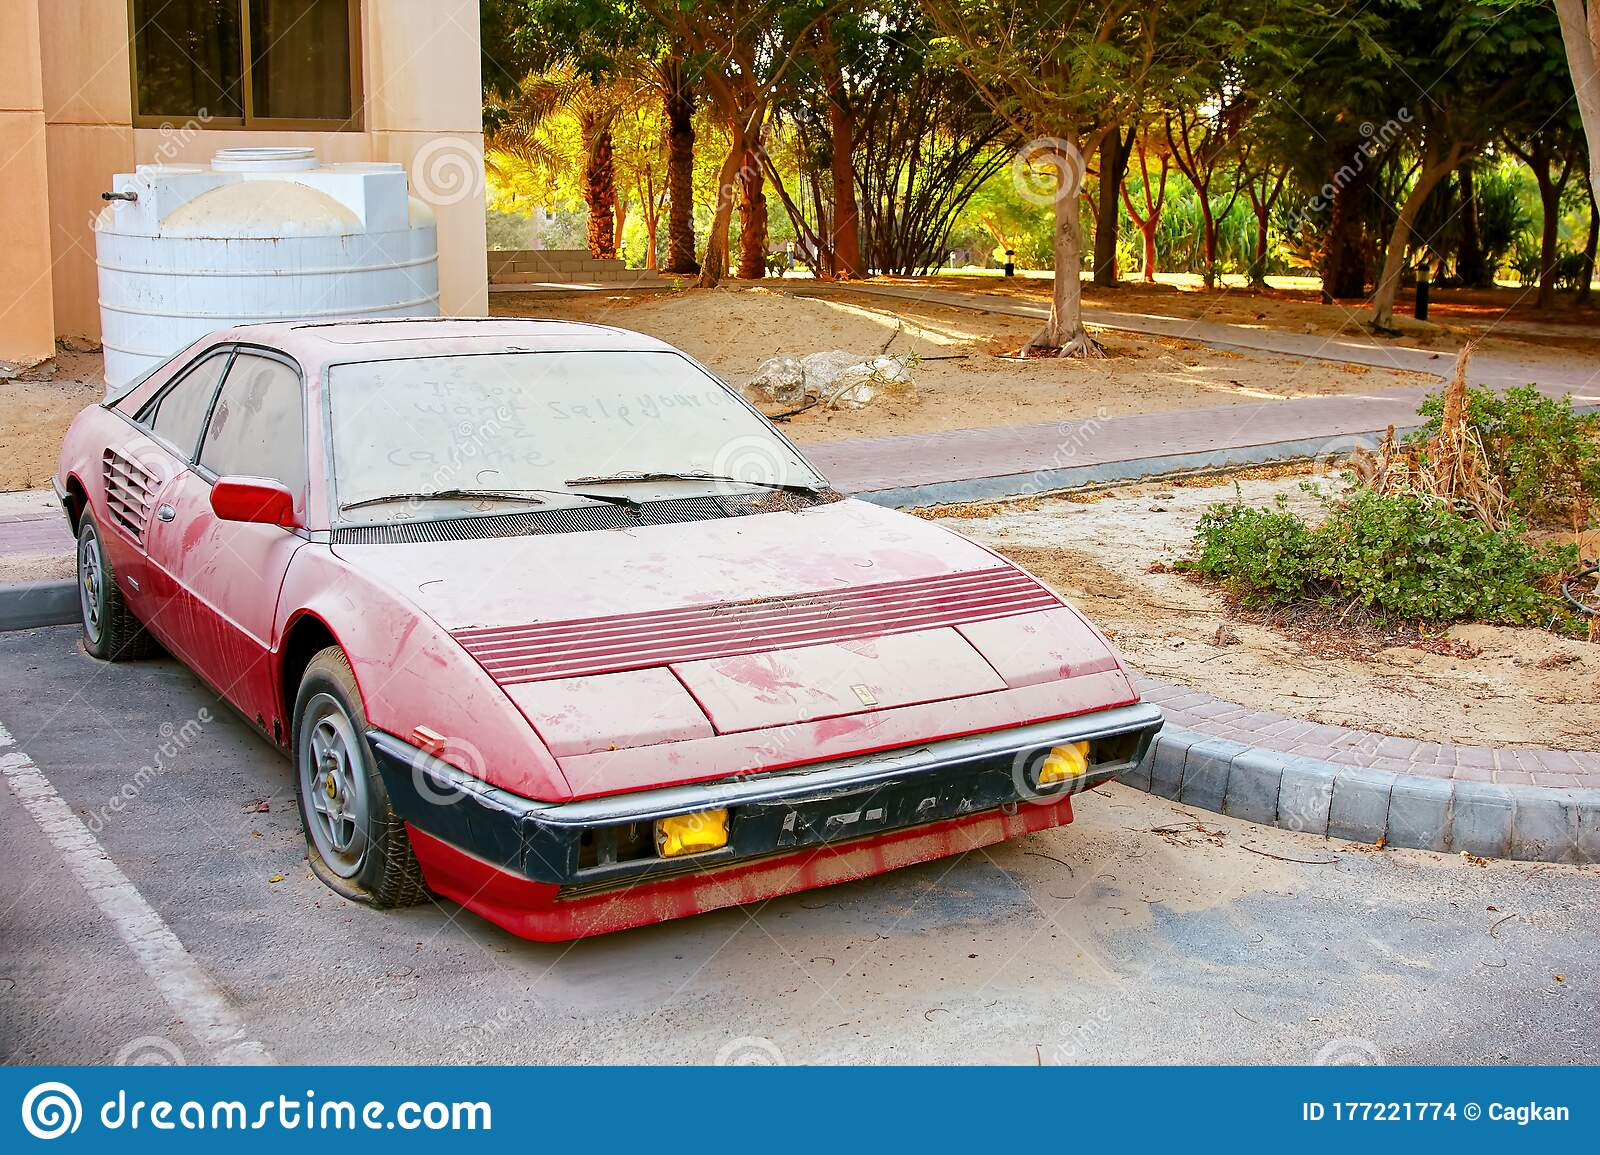 Abandoned Ferrari Car Covered With Dust In The Parking Lot Editorial Stock Image Image Of Grunge Dubai 177221774